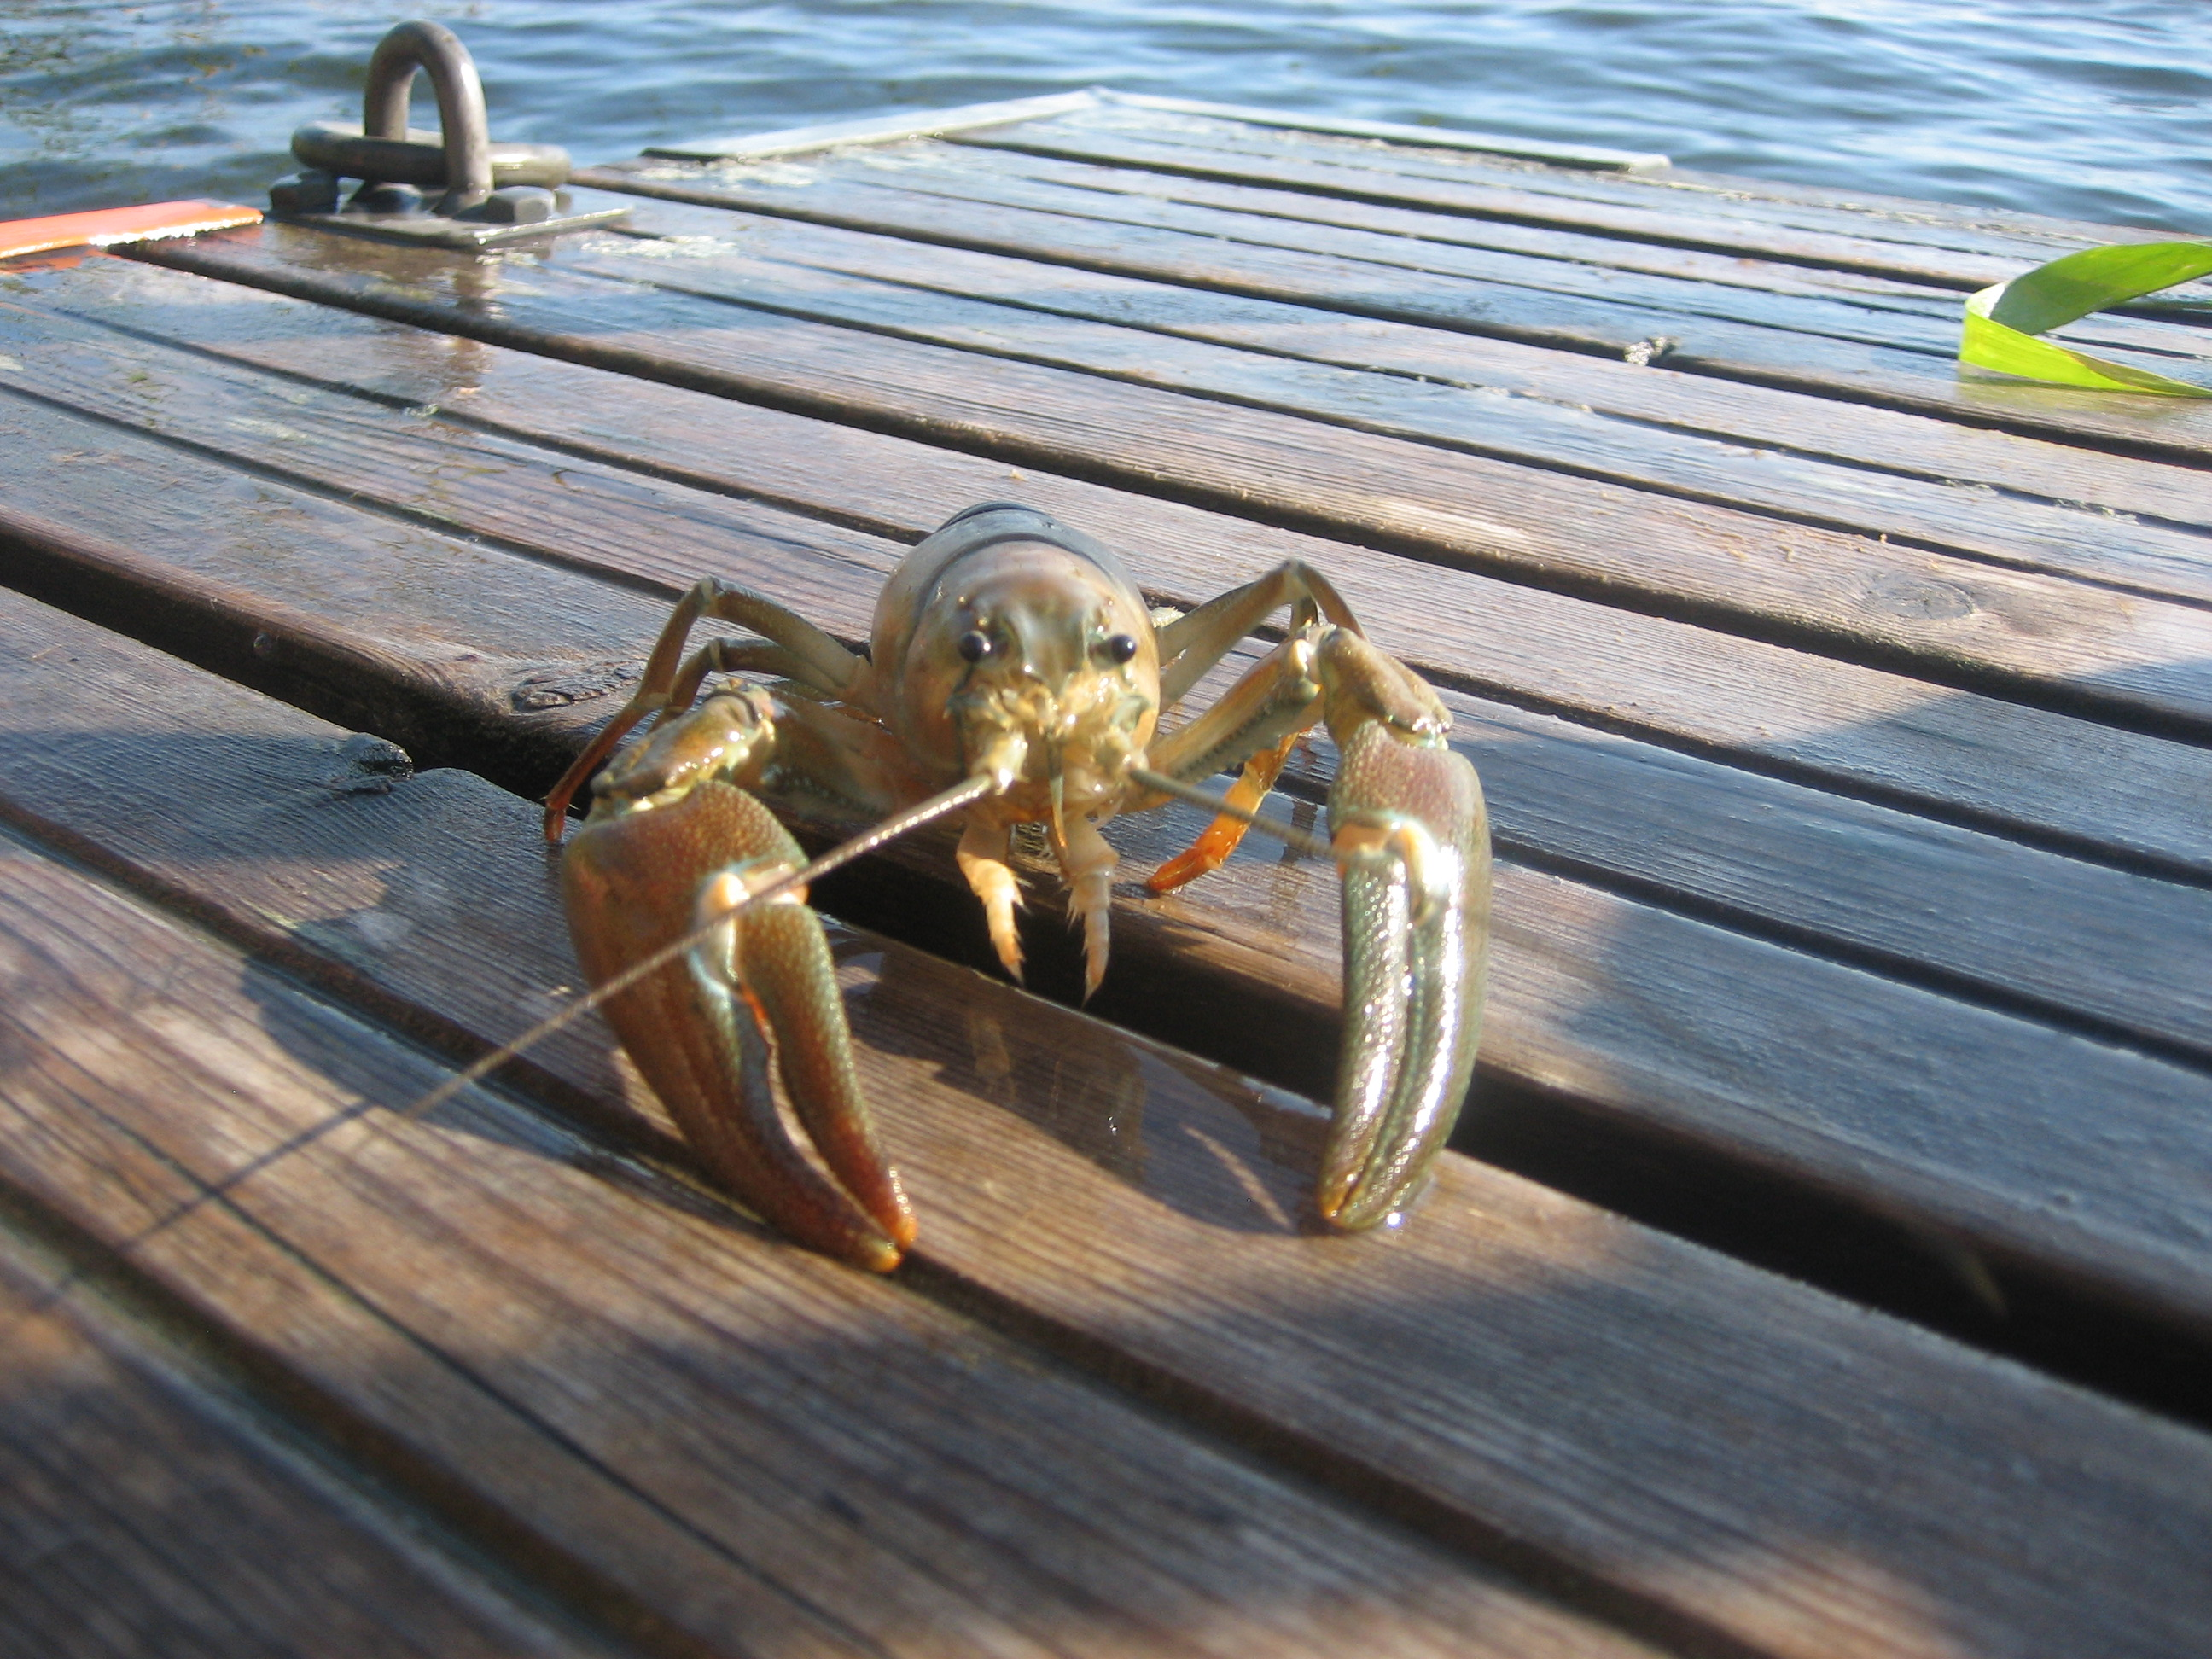 crayfish fishing from sweden with love